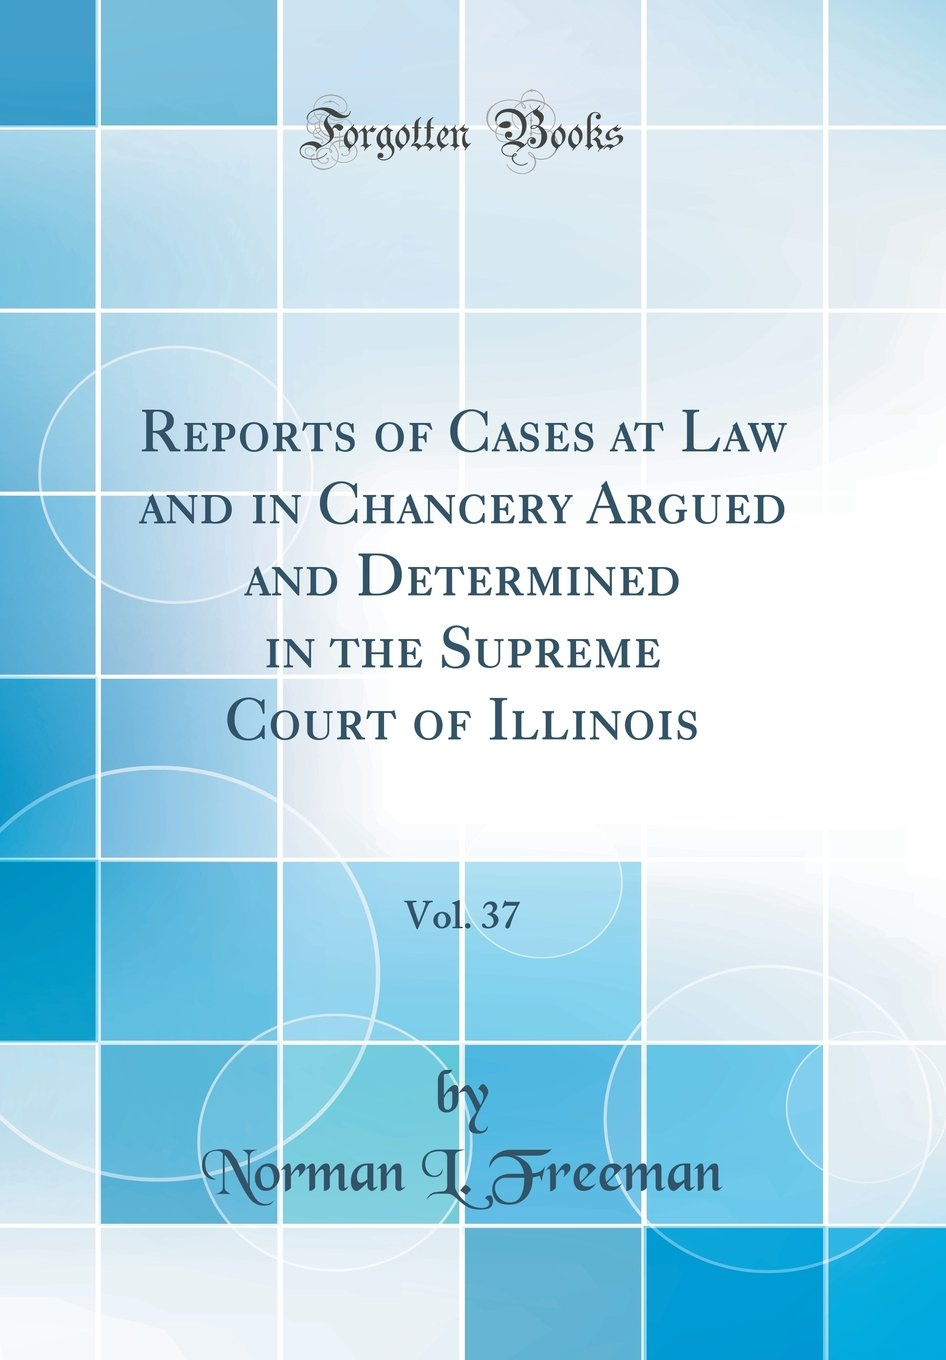 Download Reports of Cases at Law and in Chancery Argued and Determined in the Supreme Court of Illinois, Vol. 37 (Classic Reprint) PDF